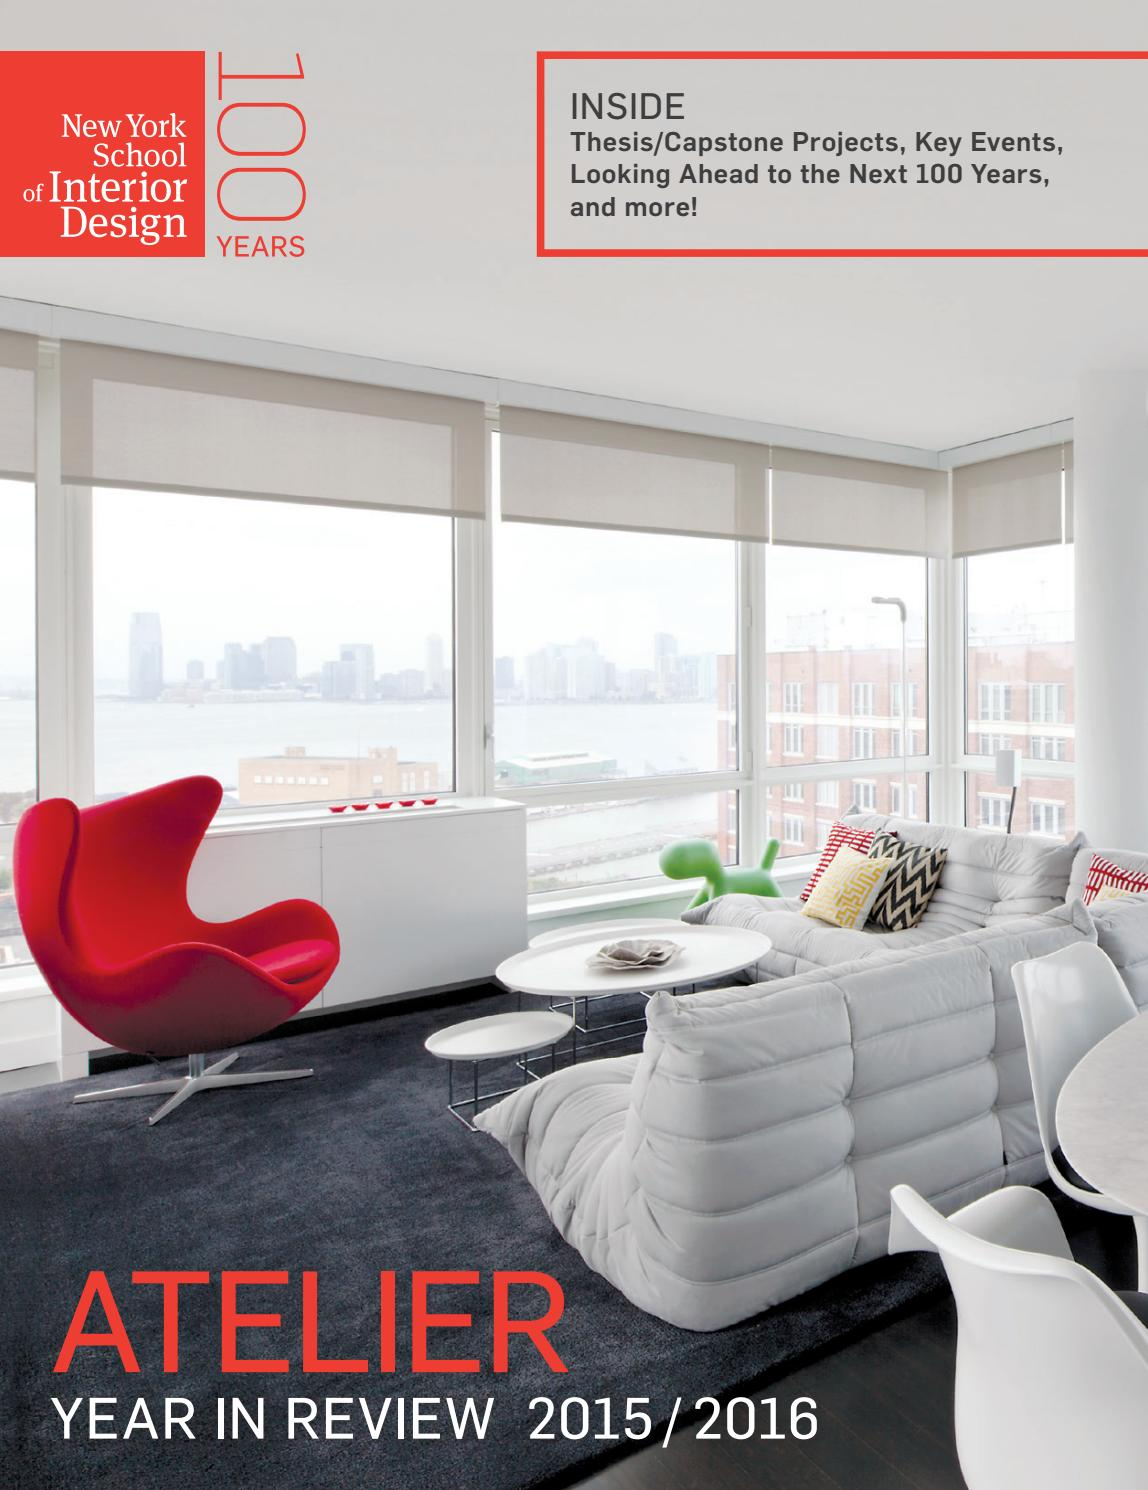 Atelier Year In Review 2015 2016 By New York School Of Interior Design